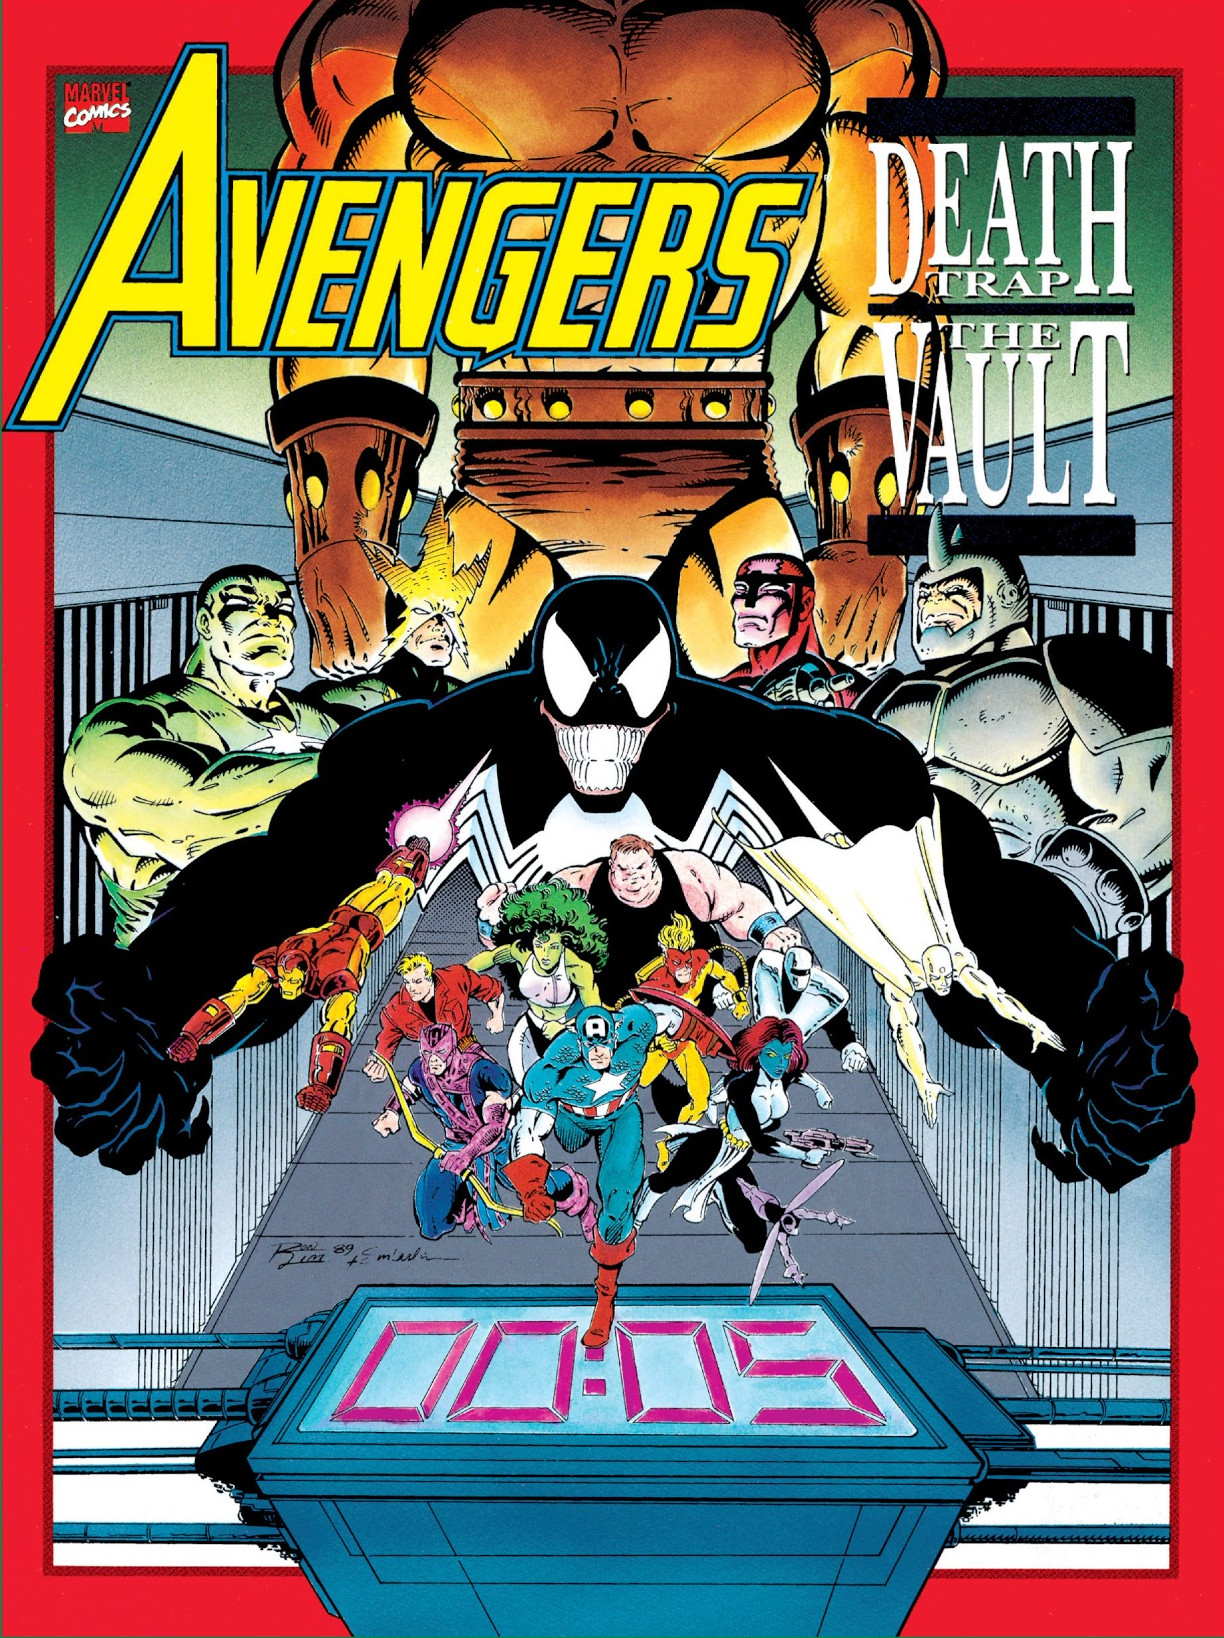 Avengers: Death Trap, The Vault Vol 1 1